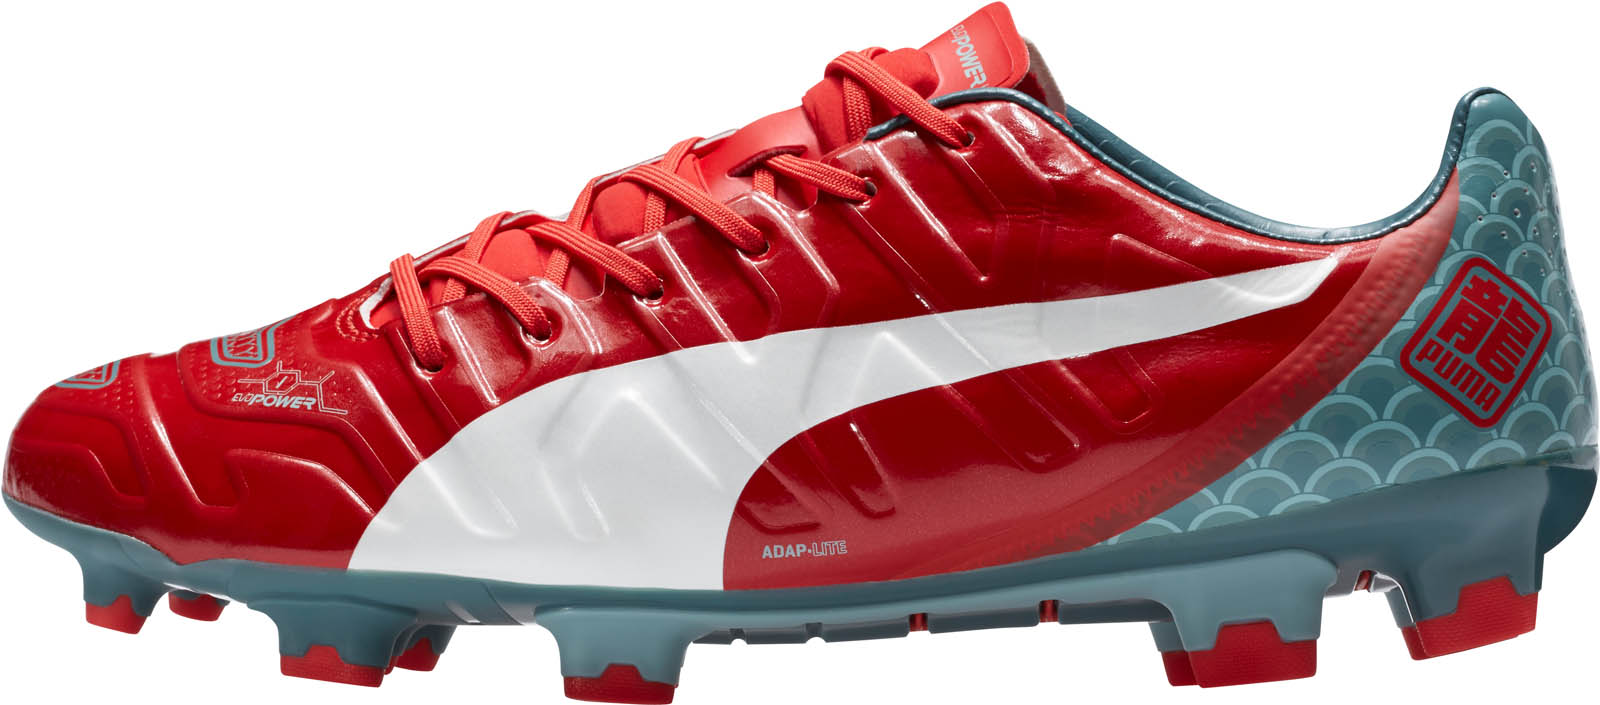 new arrival 11603 2a055 PUMA evoPOWER Dragon Graphic Puma evoPOWER 1.2 Japanese Dragons Boots  Edition Red Light Blue .